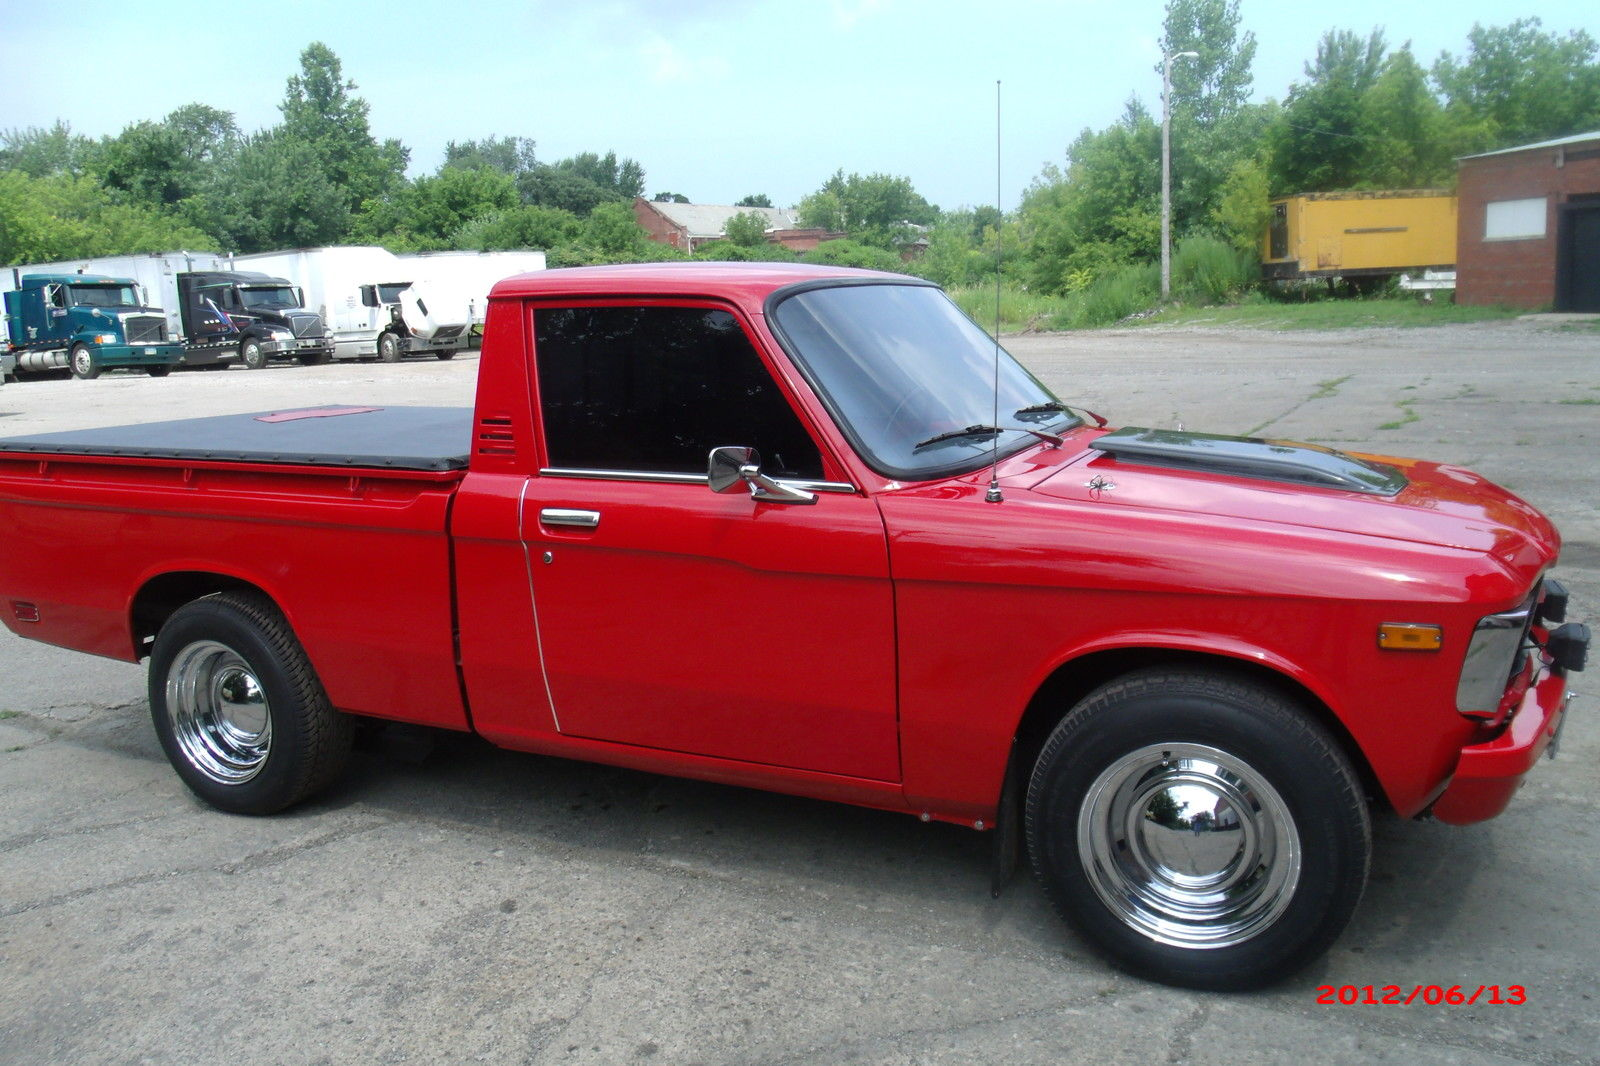 1978 chevy luv truck for sale in ashtabula ohio united states. Black Bedroom Furniture Sets. Home Design Ideas